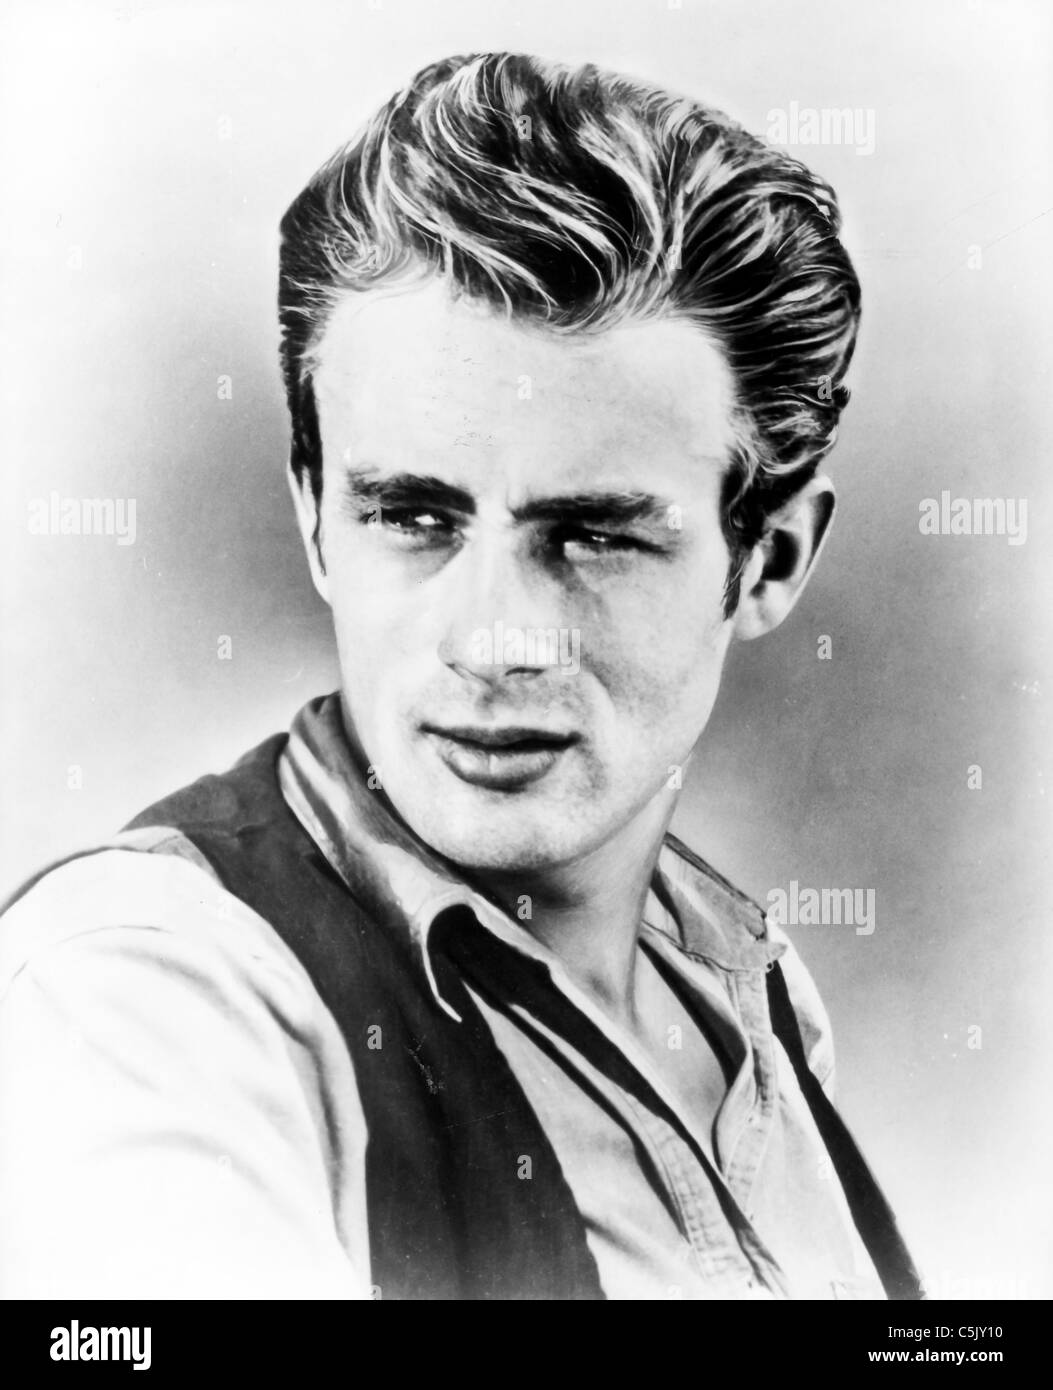 James Dean Riese, 1955 Stockbild